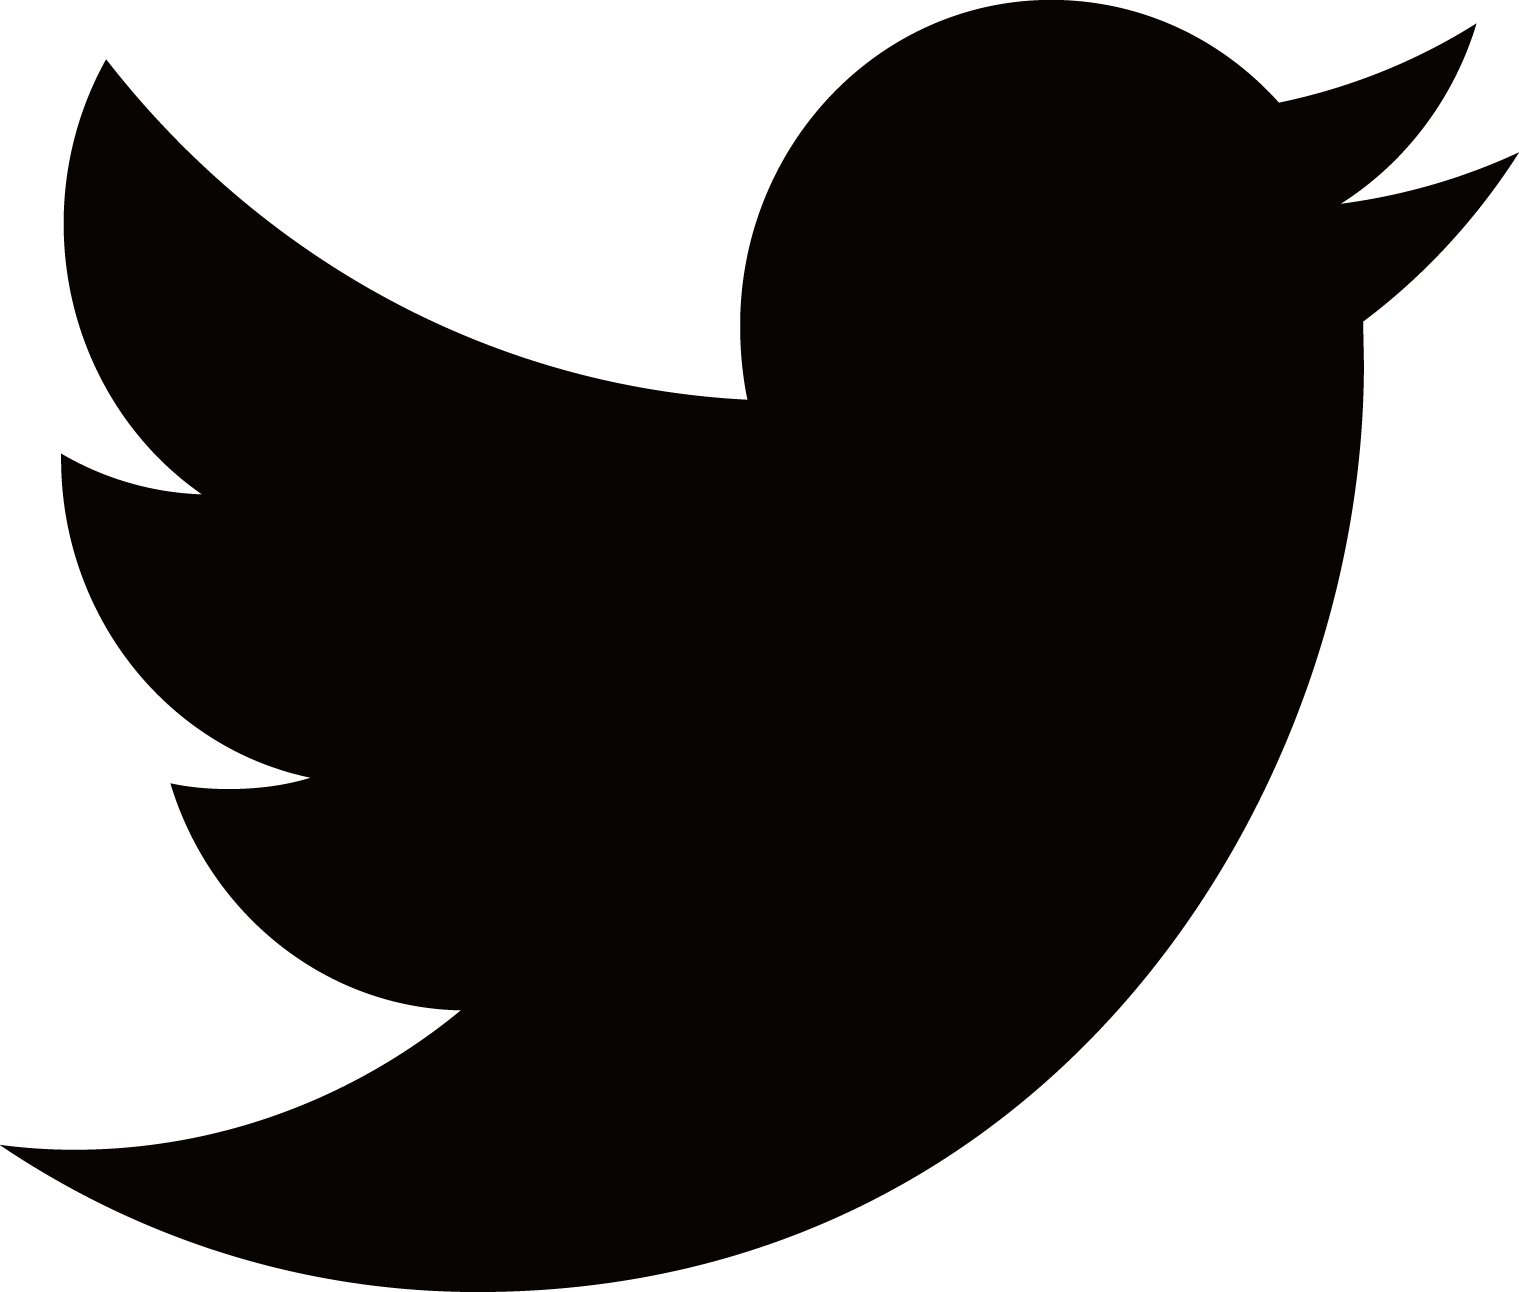 Twitter Logo Black Background Pictures to Pin on Pinterest ...